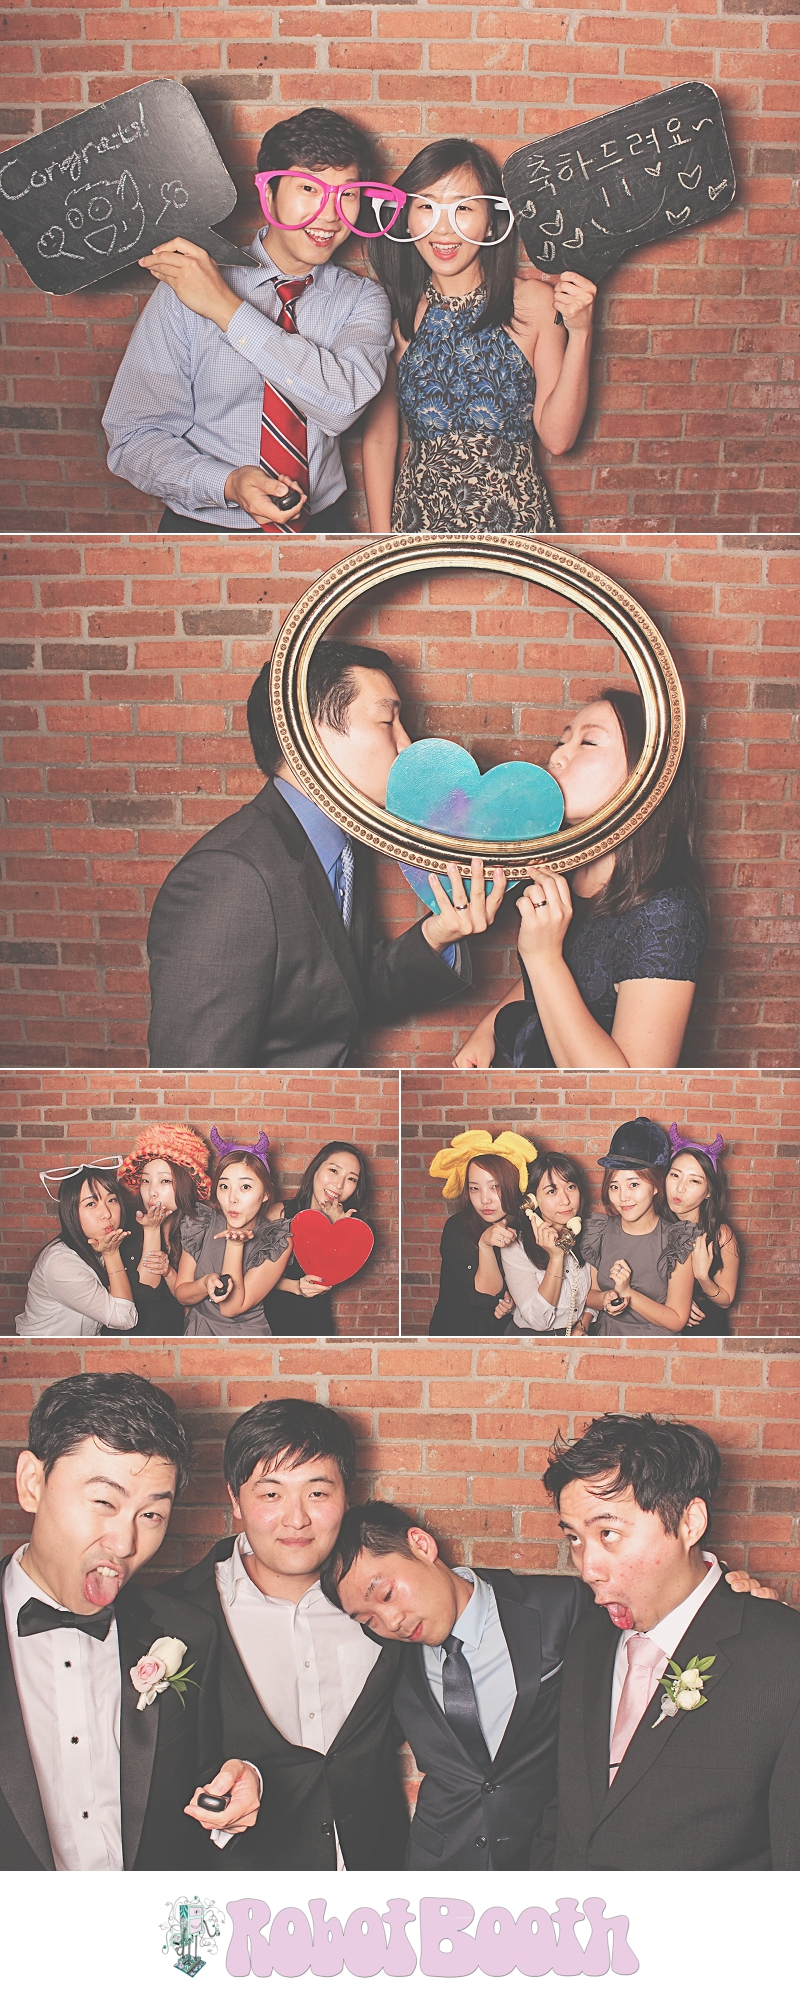 Atlanta Roswell Cottage Historic Center PhotoBooth - Casey & Jin's Wedding - RobotBooth 2